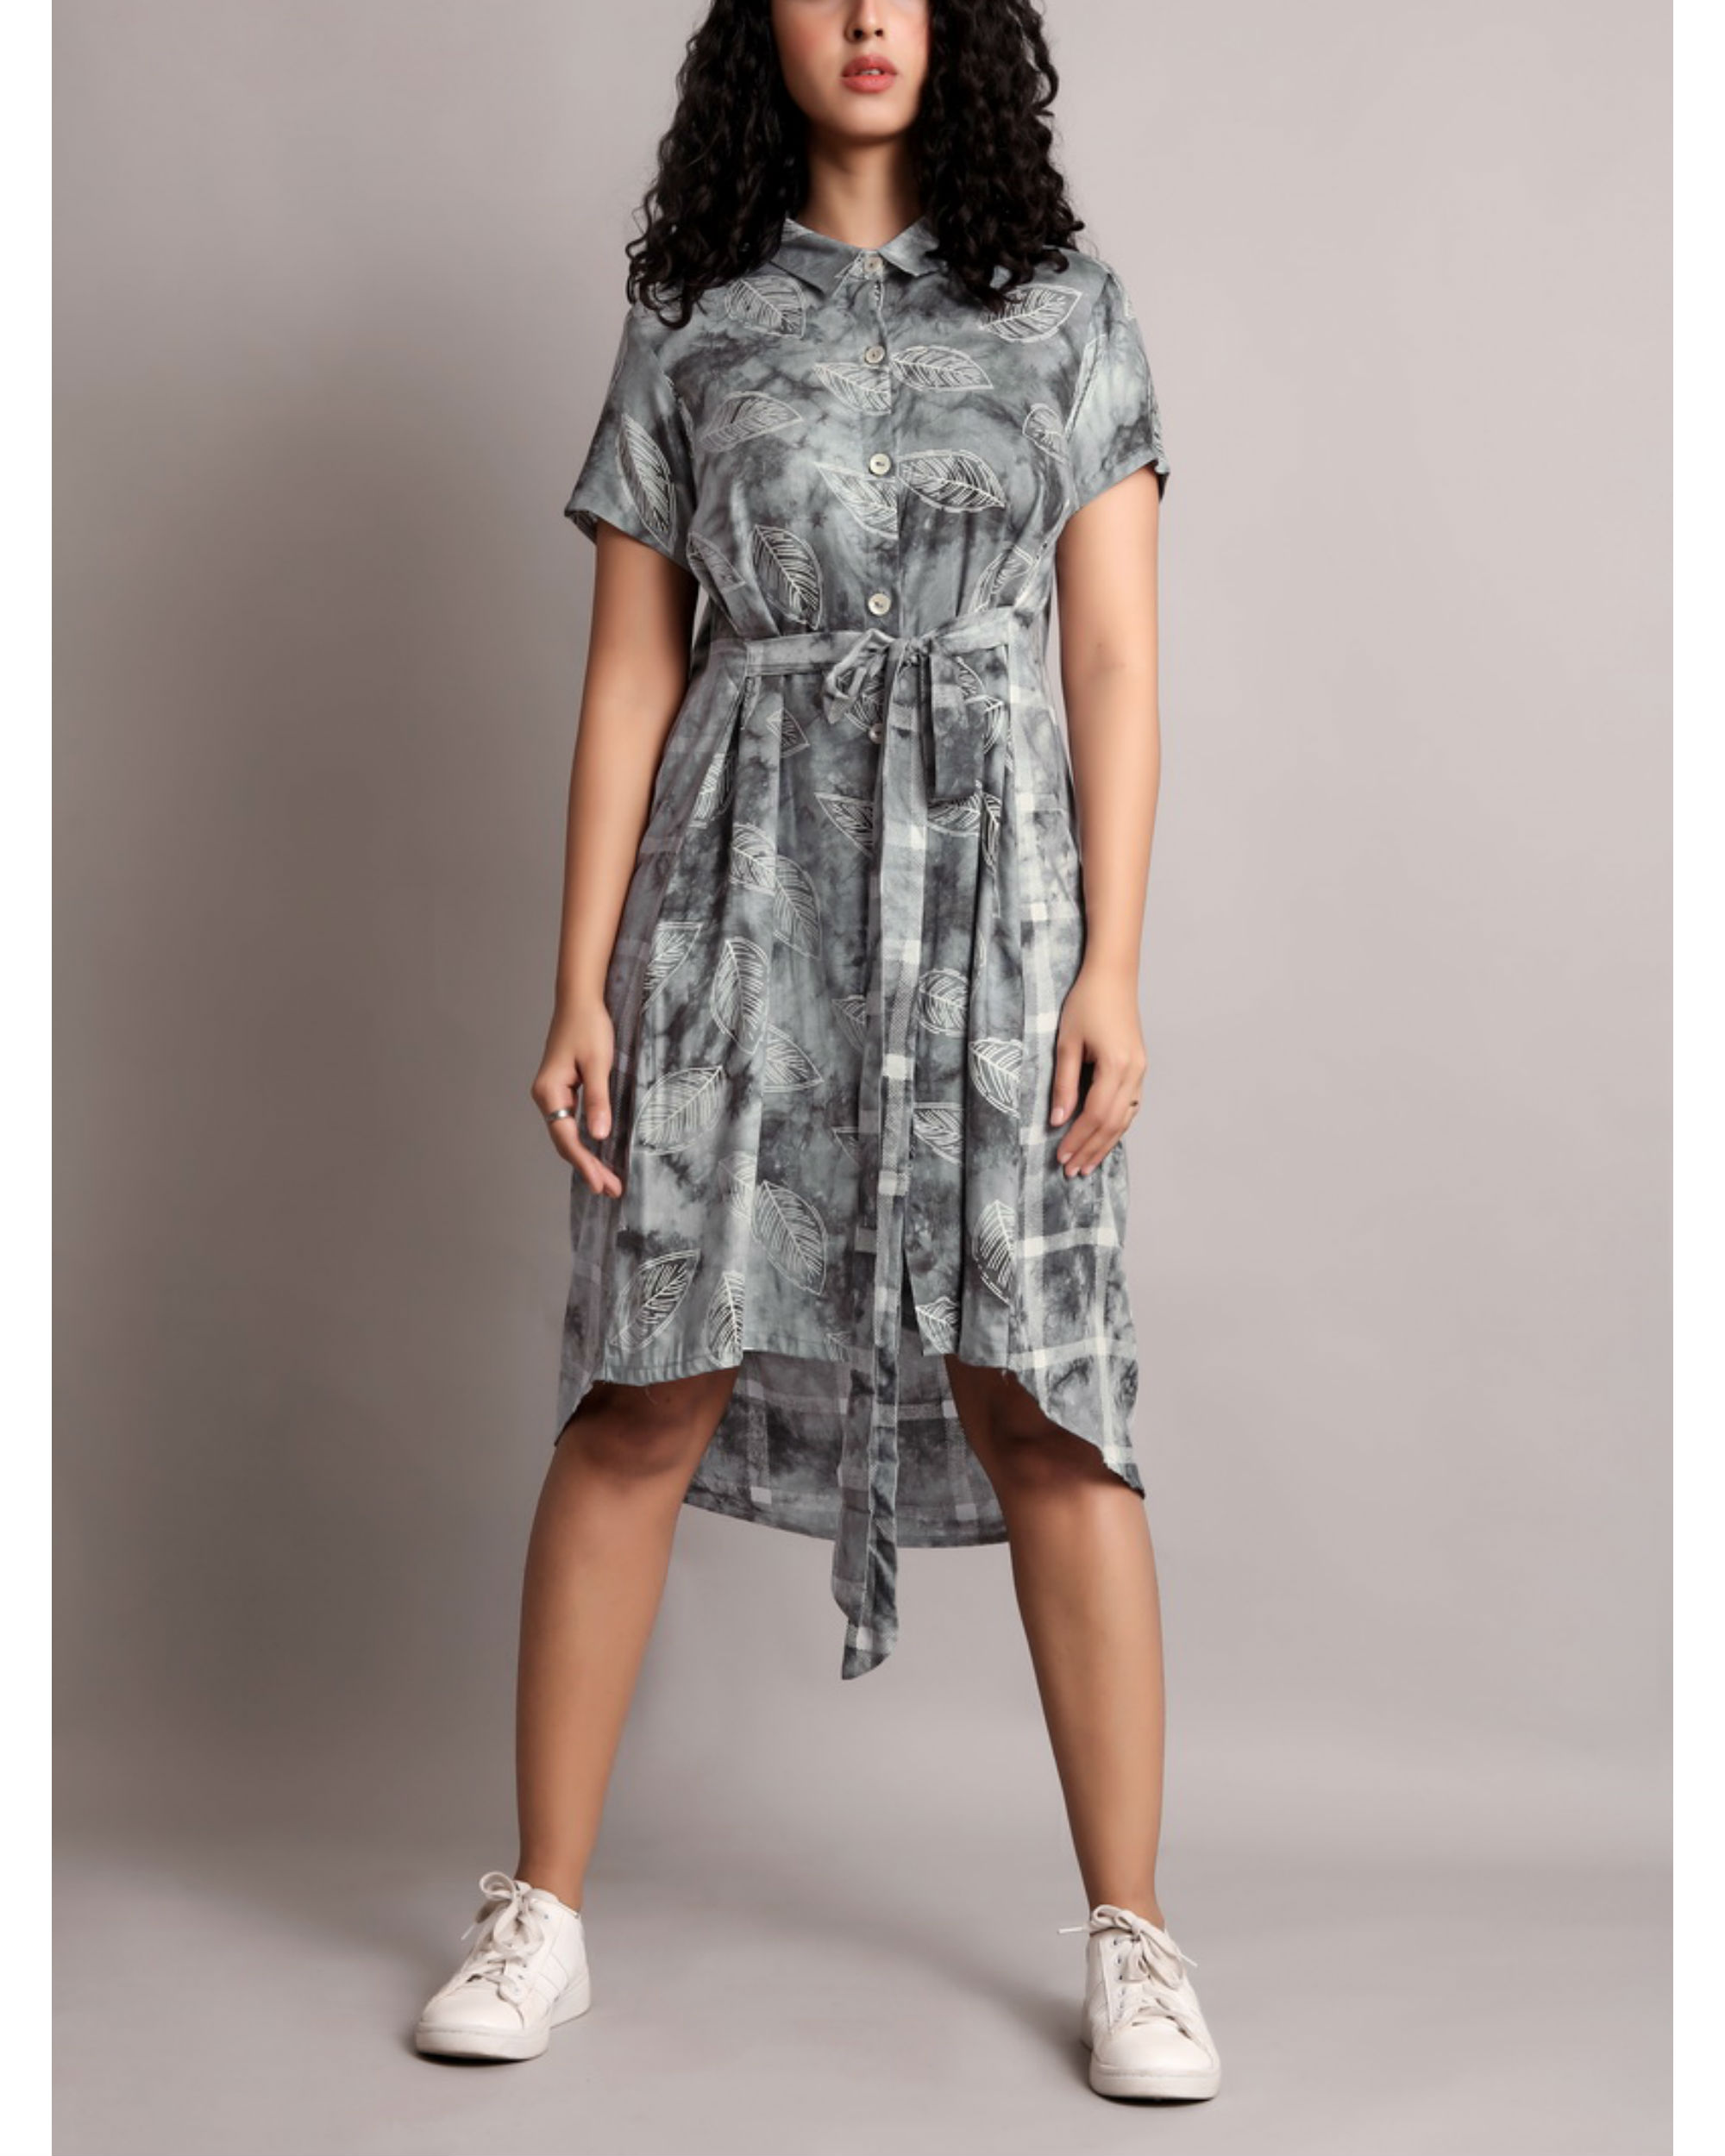 Grey half and half front tie-up dress